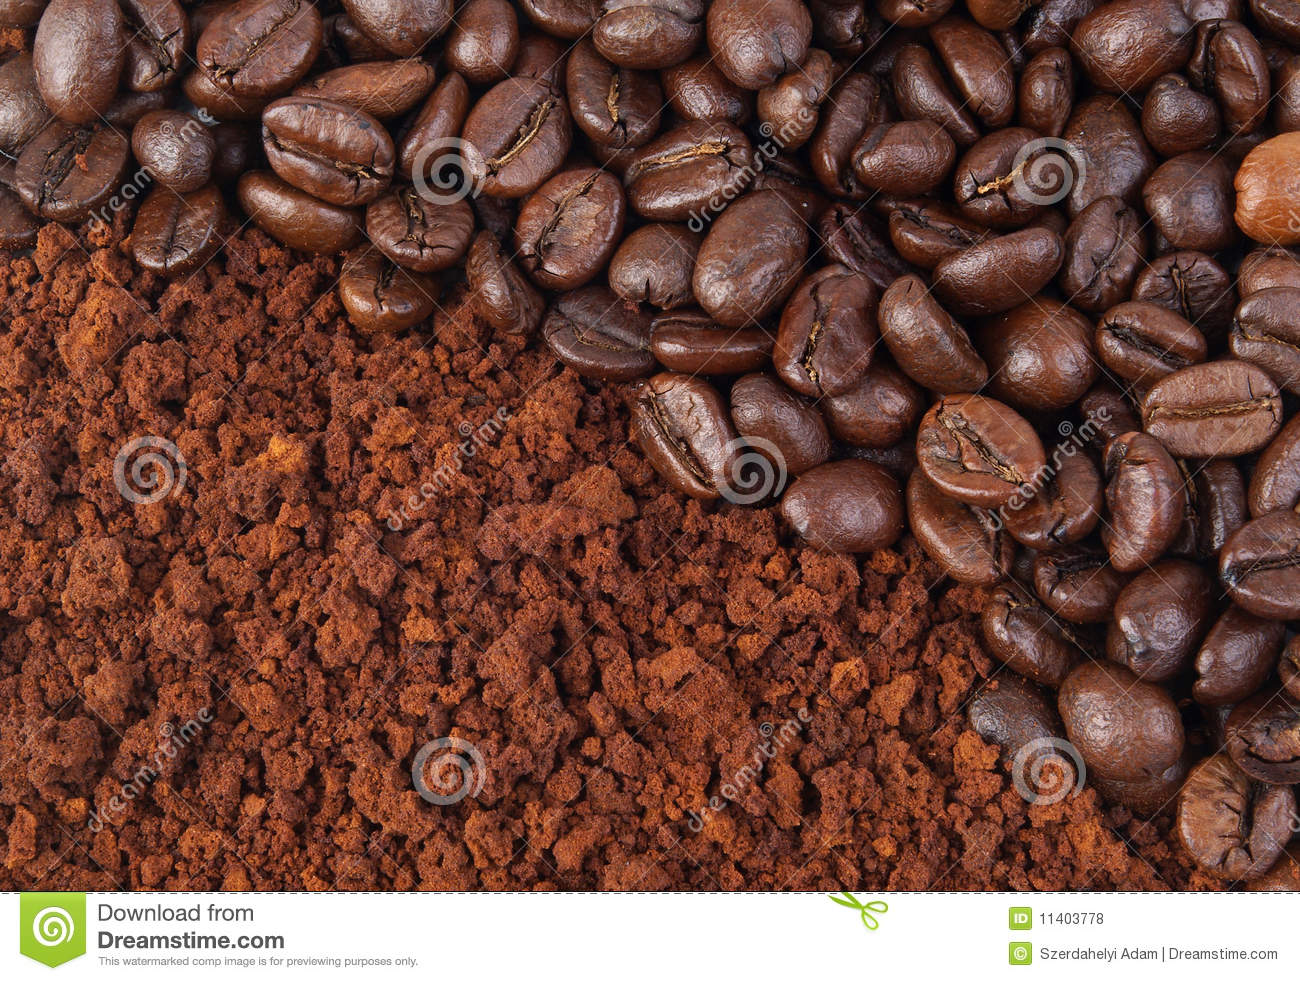 how to make coffee with ground coffee beans